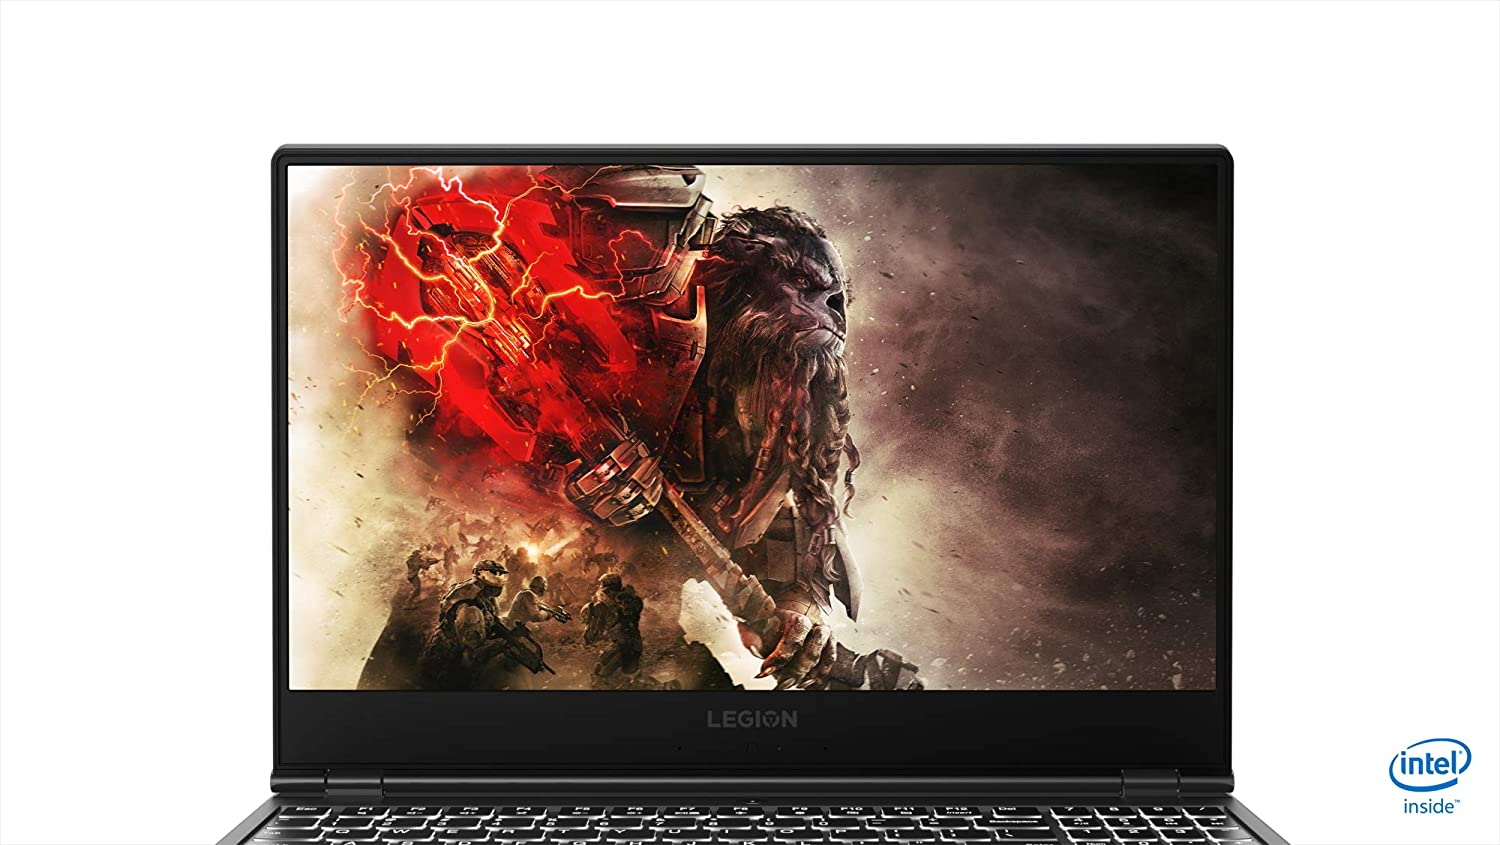 Lenovo Legion Y530 Intel Core I7 8th Gen 15 6 - inch Gaming FHD Laptop  (8GB/ 1TB HDD +128GB SSD/ Windows 10 Home/ 4GB Graphics/ Black), 81FV00KNIN